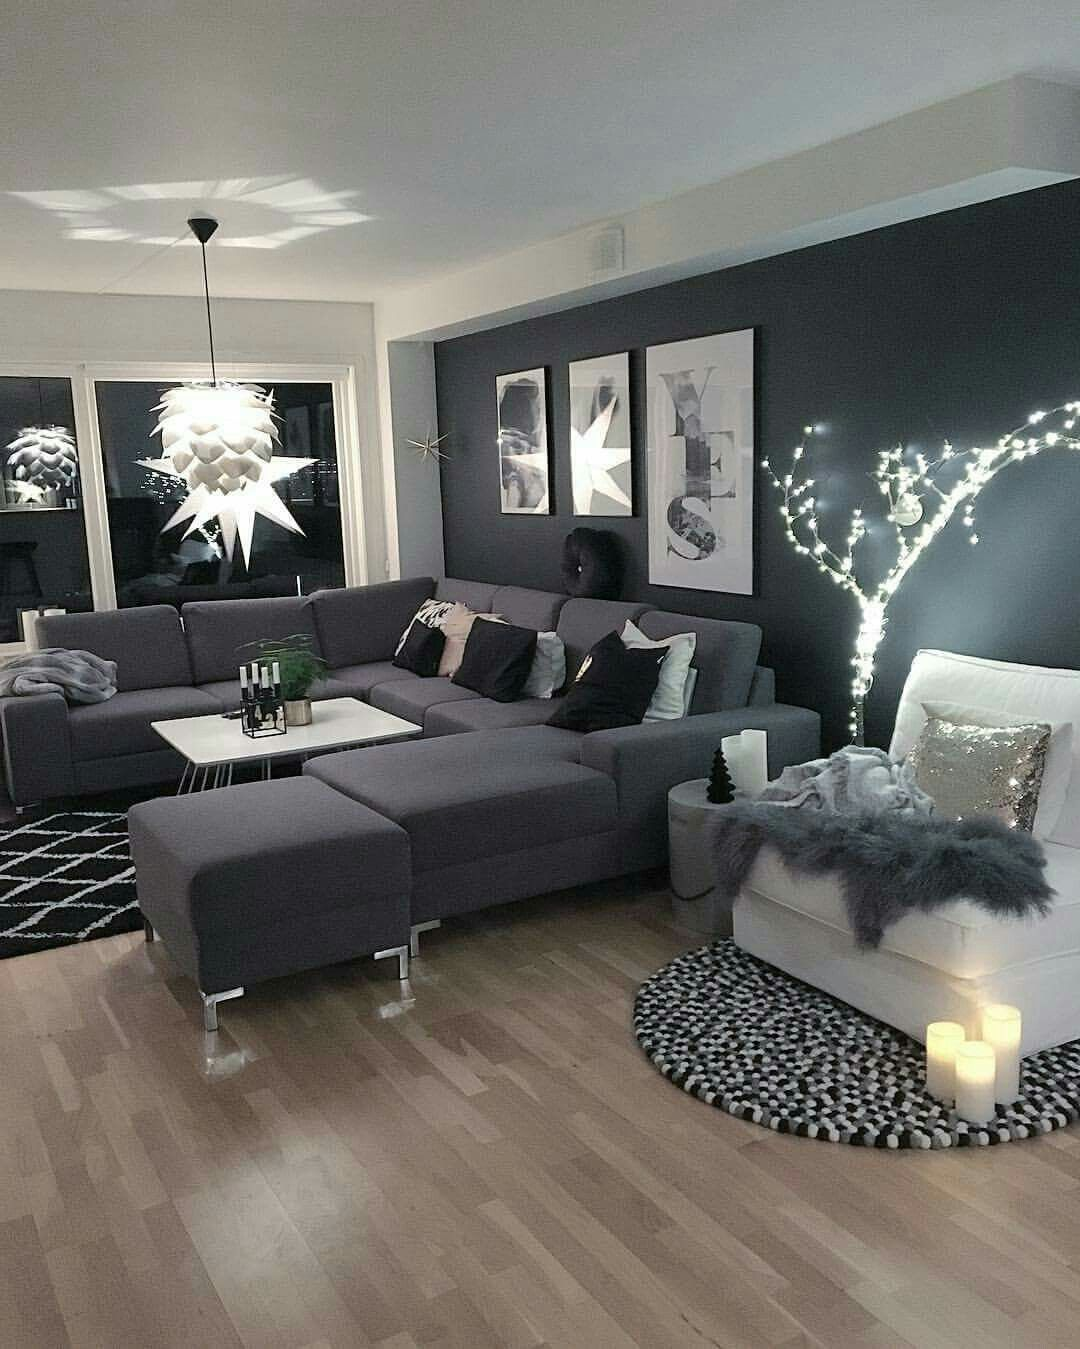 40 Grey Living Room Ideas 2020 To Channel Experiments In 2020 Small Living Room Decor Black Living Room Dark Grey Living Room